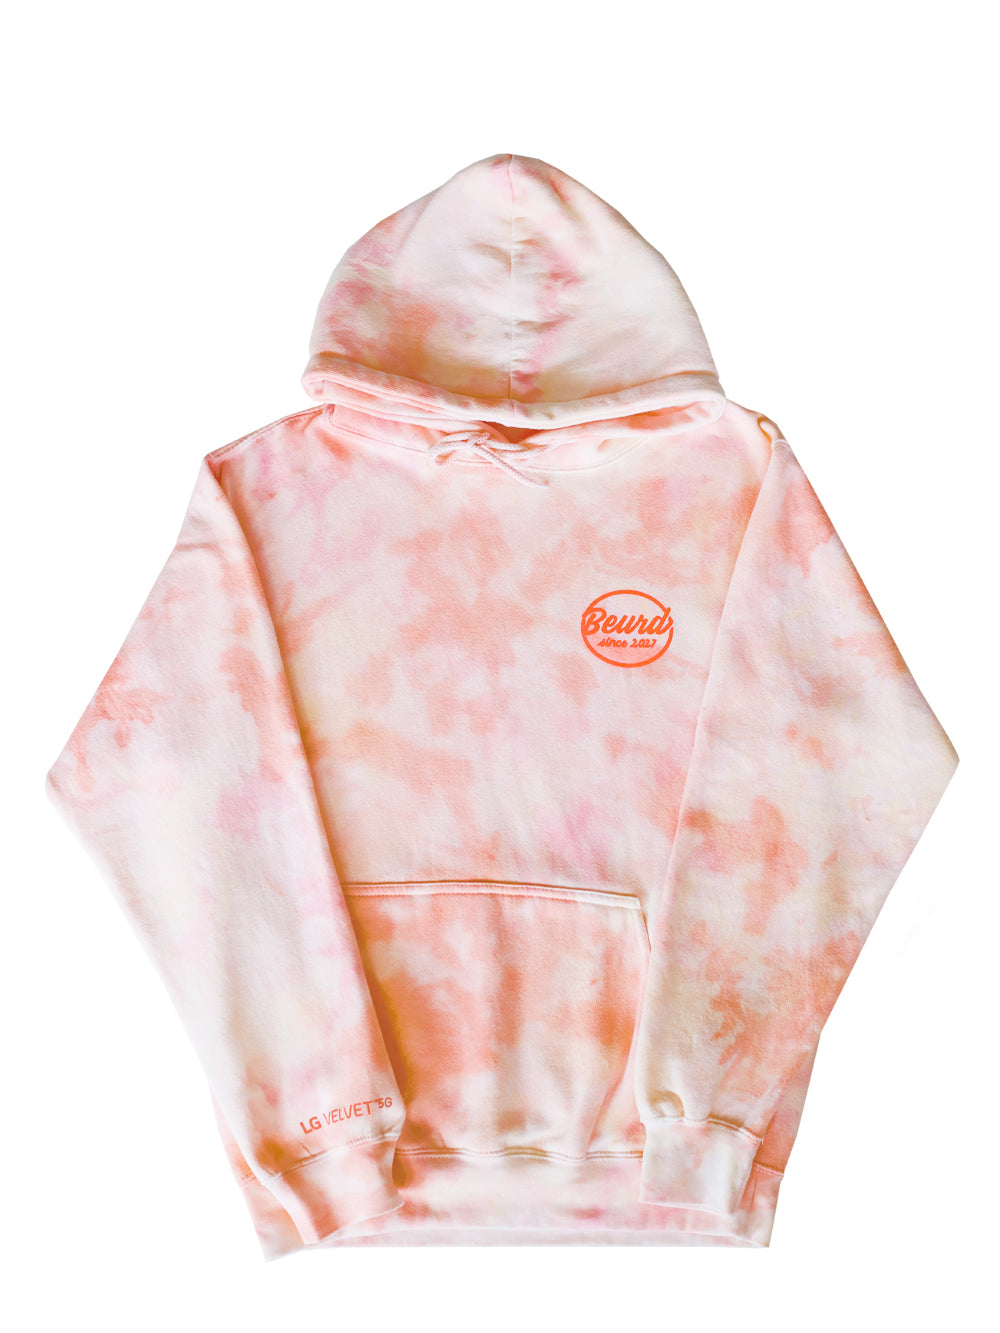 Hoodie tie and dye rose pale orange fait pour une collaboration avec LG Canada et Beurd photo à plat de l'avant du hoodie